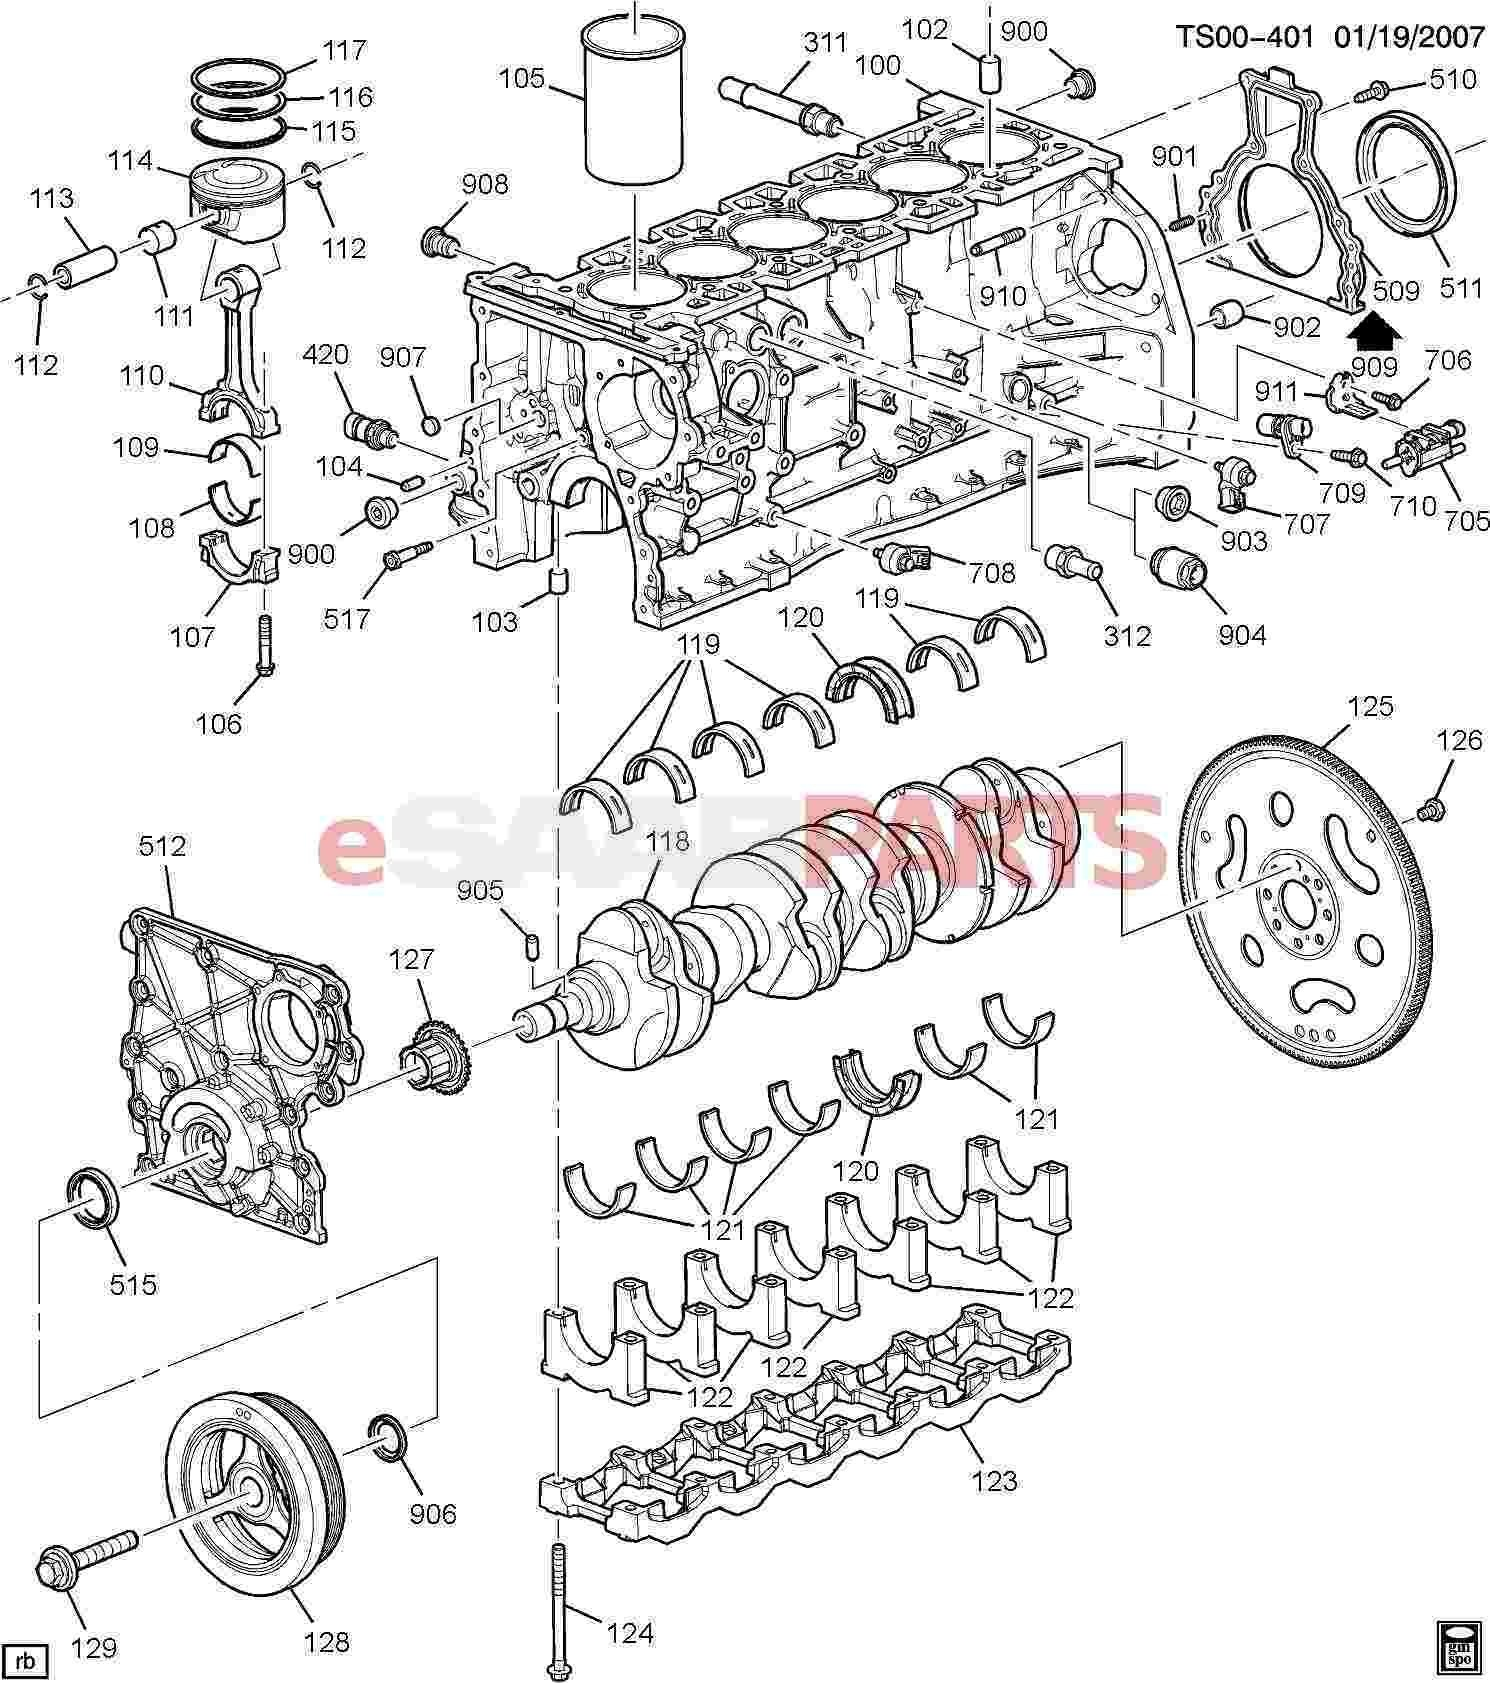 2003 Chevy Trailblazer Parts Diagram 2003 Chevy Trailblazer Engine Diagram 2003 Chevy Trailblazer Engine Of 2003 Chevy Trailblazer Parts Diagram